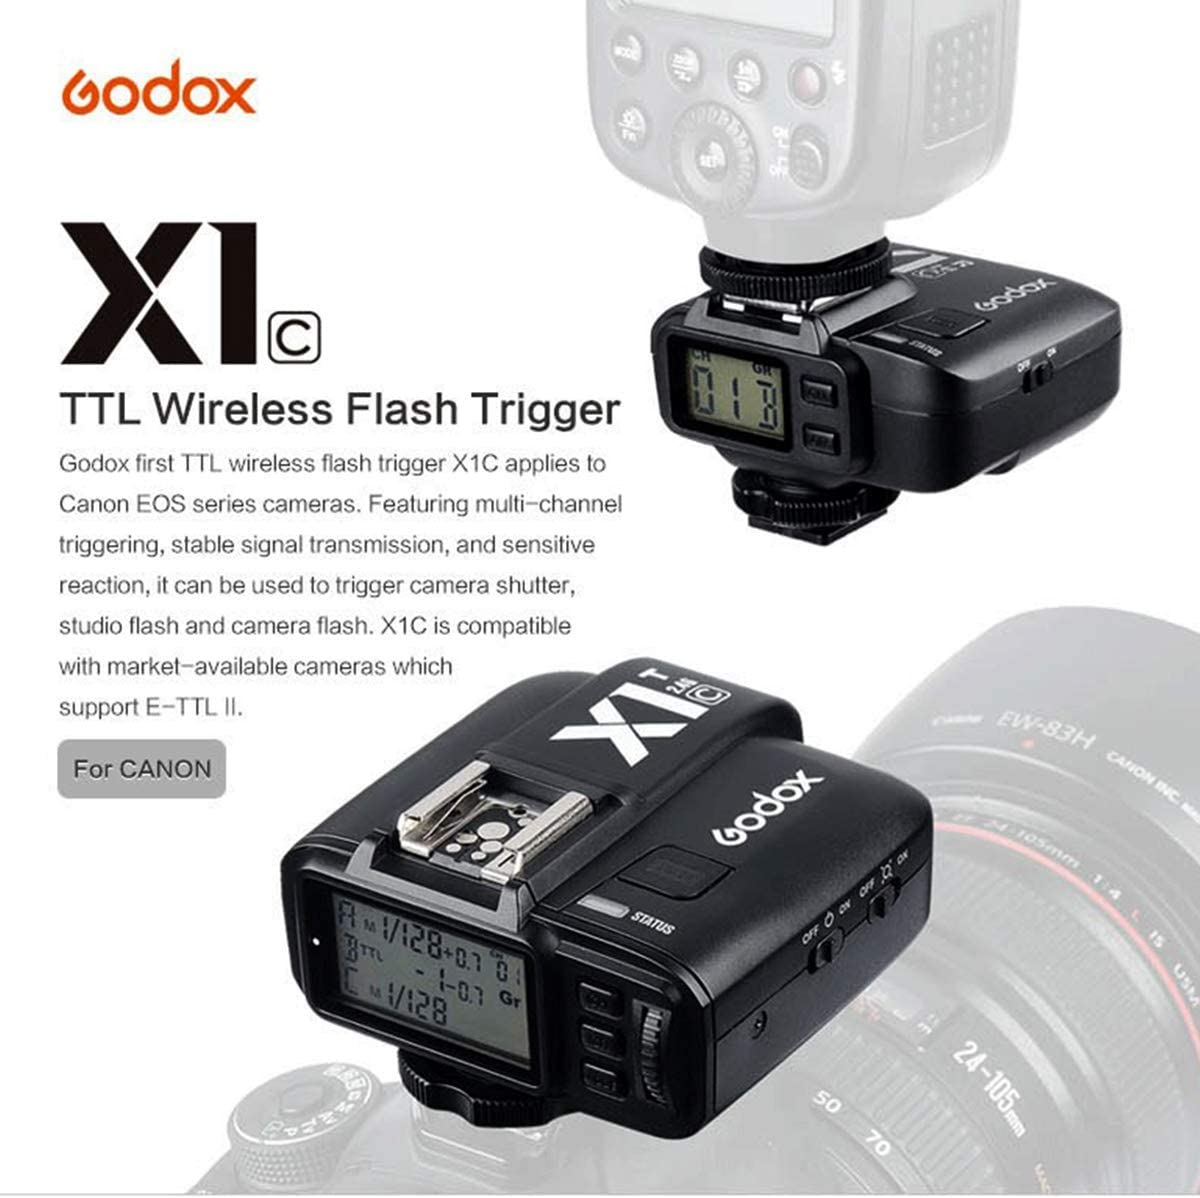 2.4G TTL Wireless Trigger with X1R-C Controller Receiver for Canon EOS SLR Digital Cameras,E-TTL II Function,32CH,HSS 1//8000s Godox X1C X1T-C Transmitter + X1R-C Receiver X1T-C+2X X1R-C